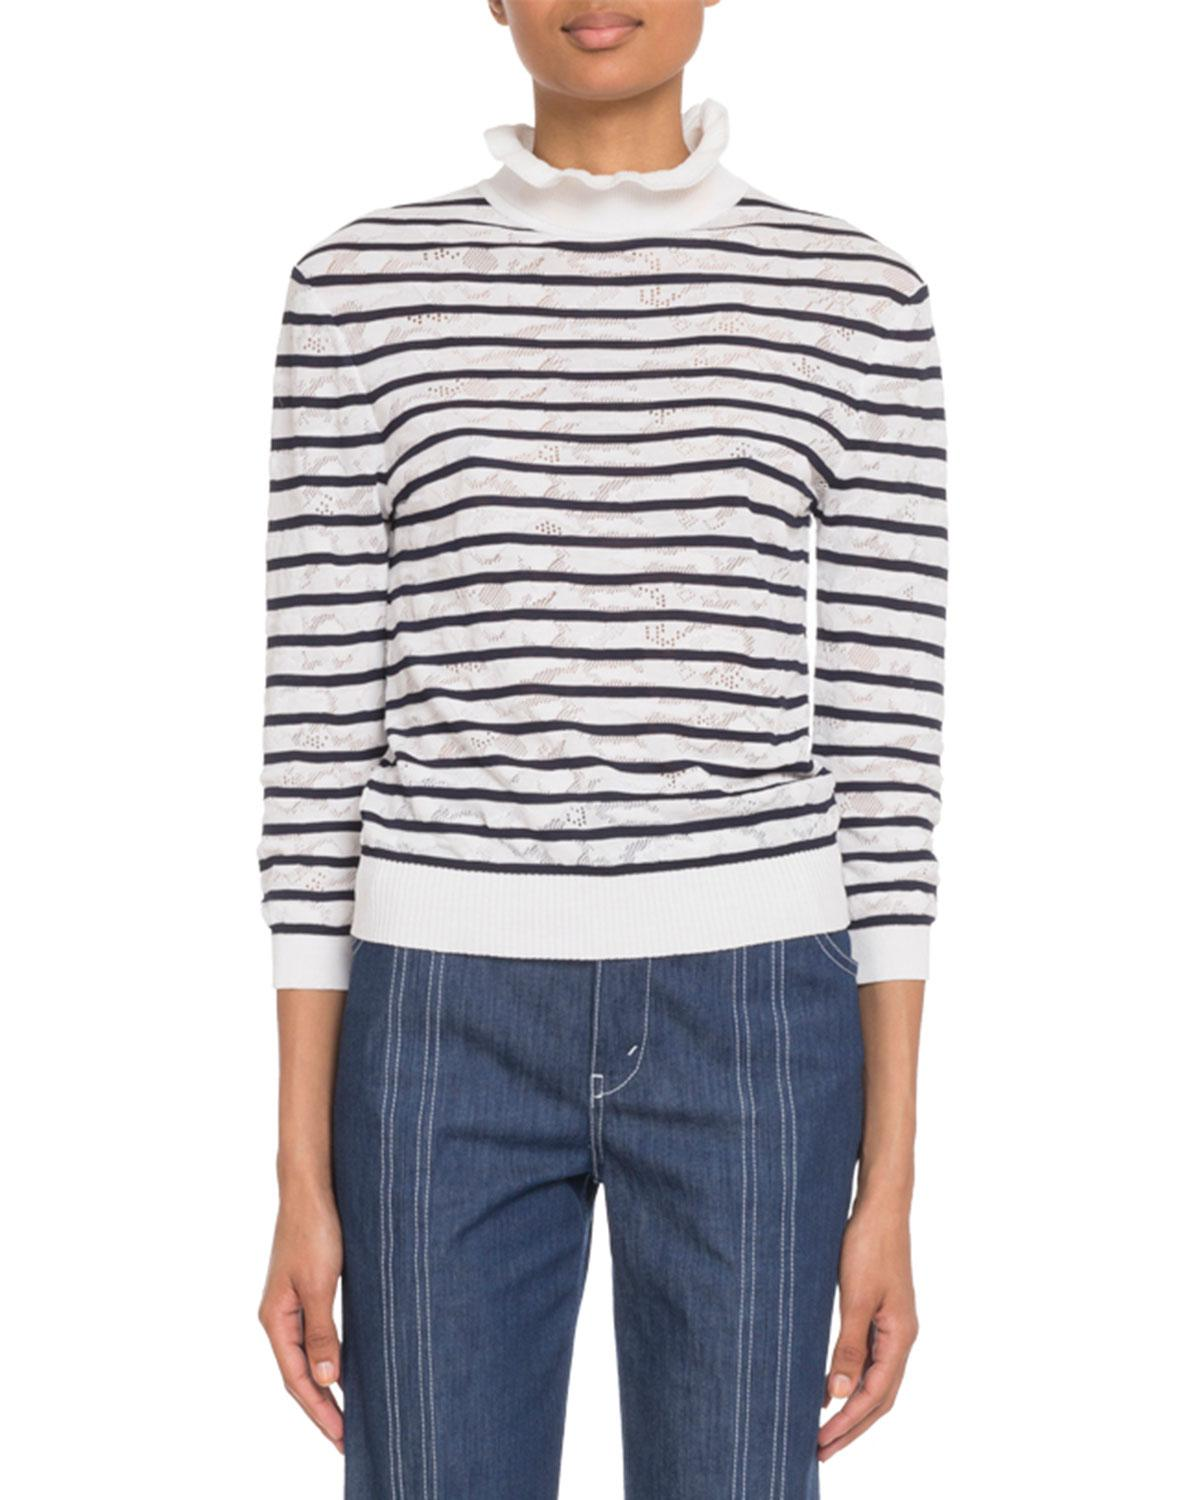 c56df41ab8285 Lyst - Chloé Ruffled Turtleneck Striped Lace Sweater in Blue